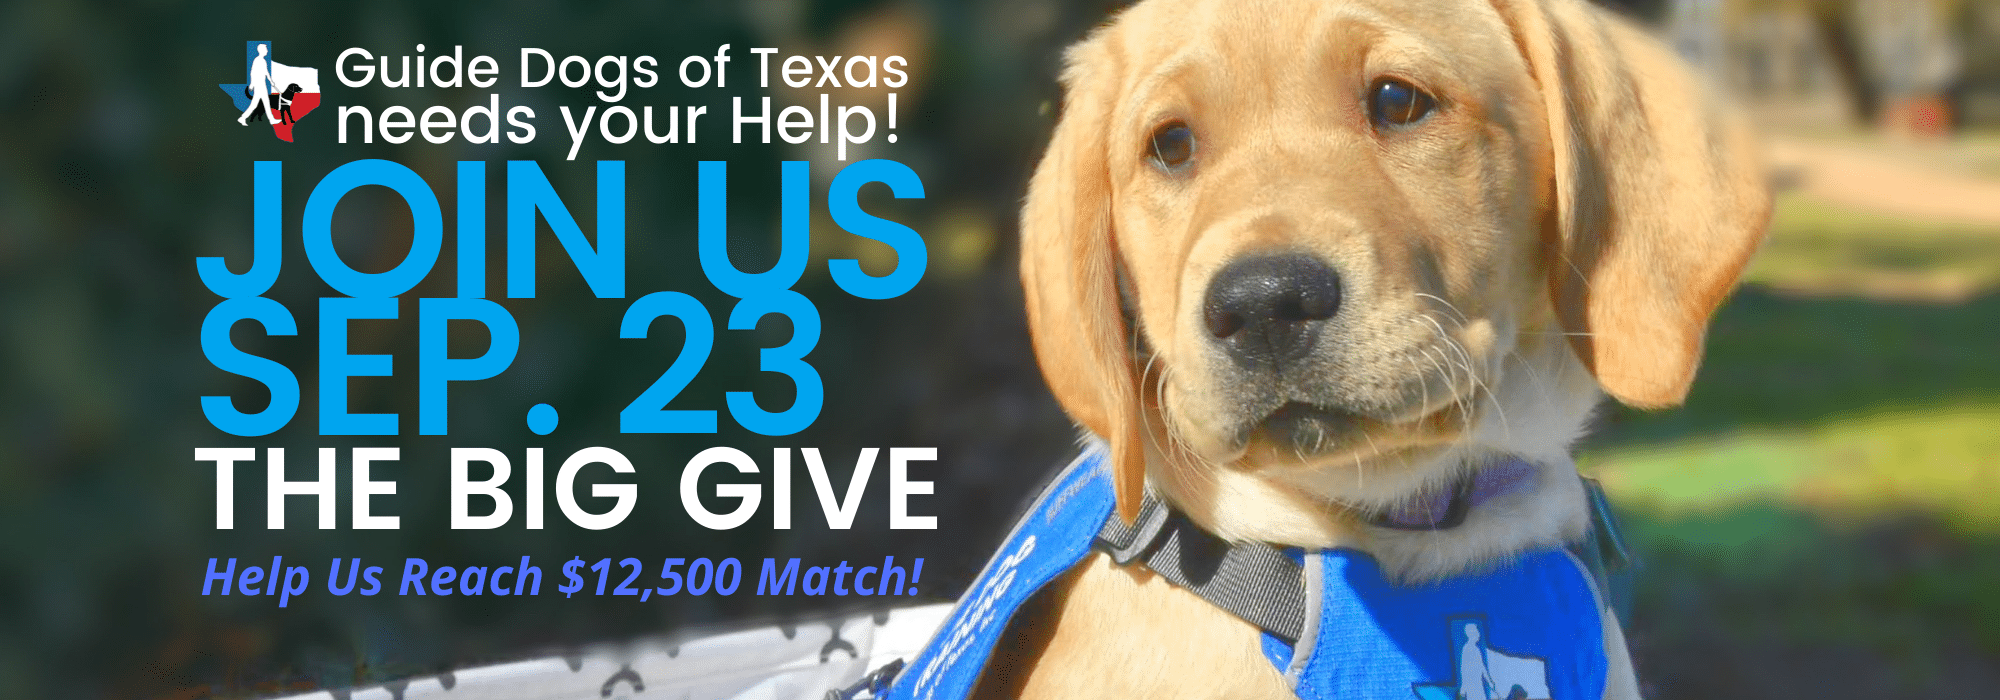 GDTX Needs Your Help! Join Us Sep. 23. The Big Give Help us reach a $12,500 match!